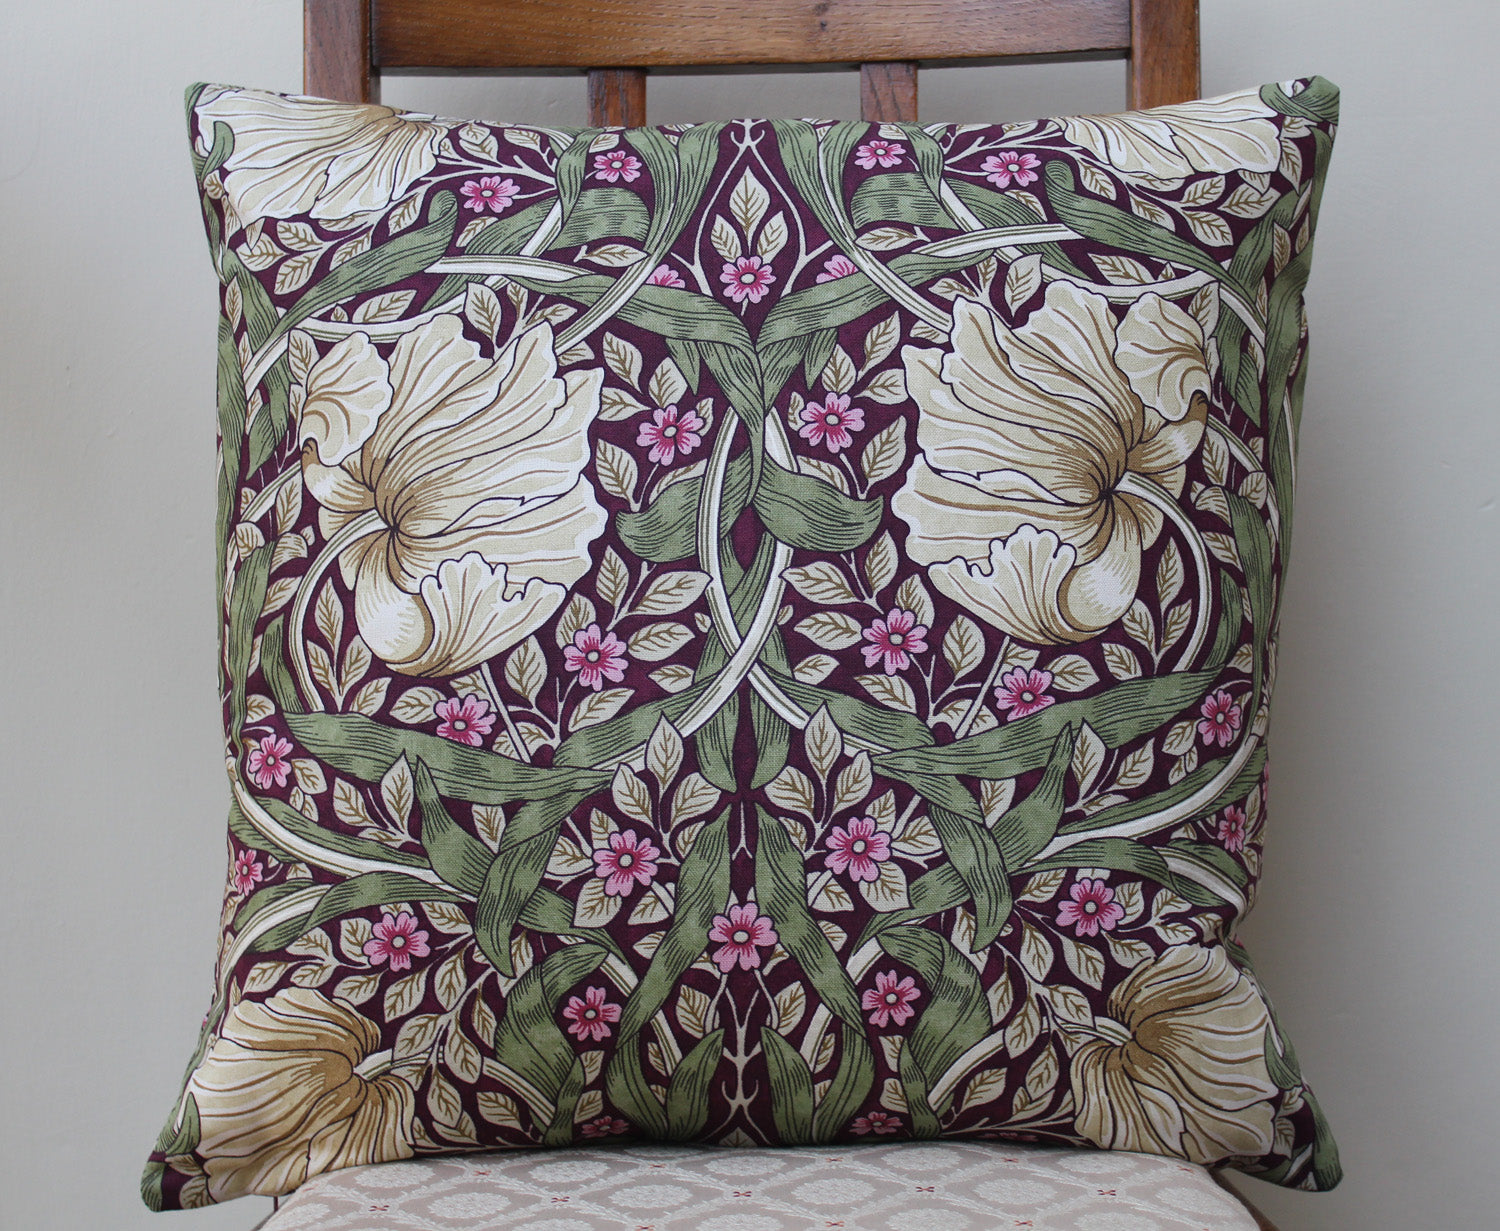 <p>Cotton filled cushion in William Morris Pimpernel Aubergine print made from Morris & Co. Sanderson fabric.</p>